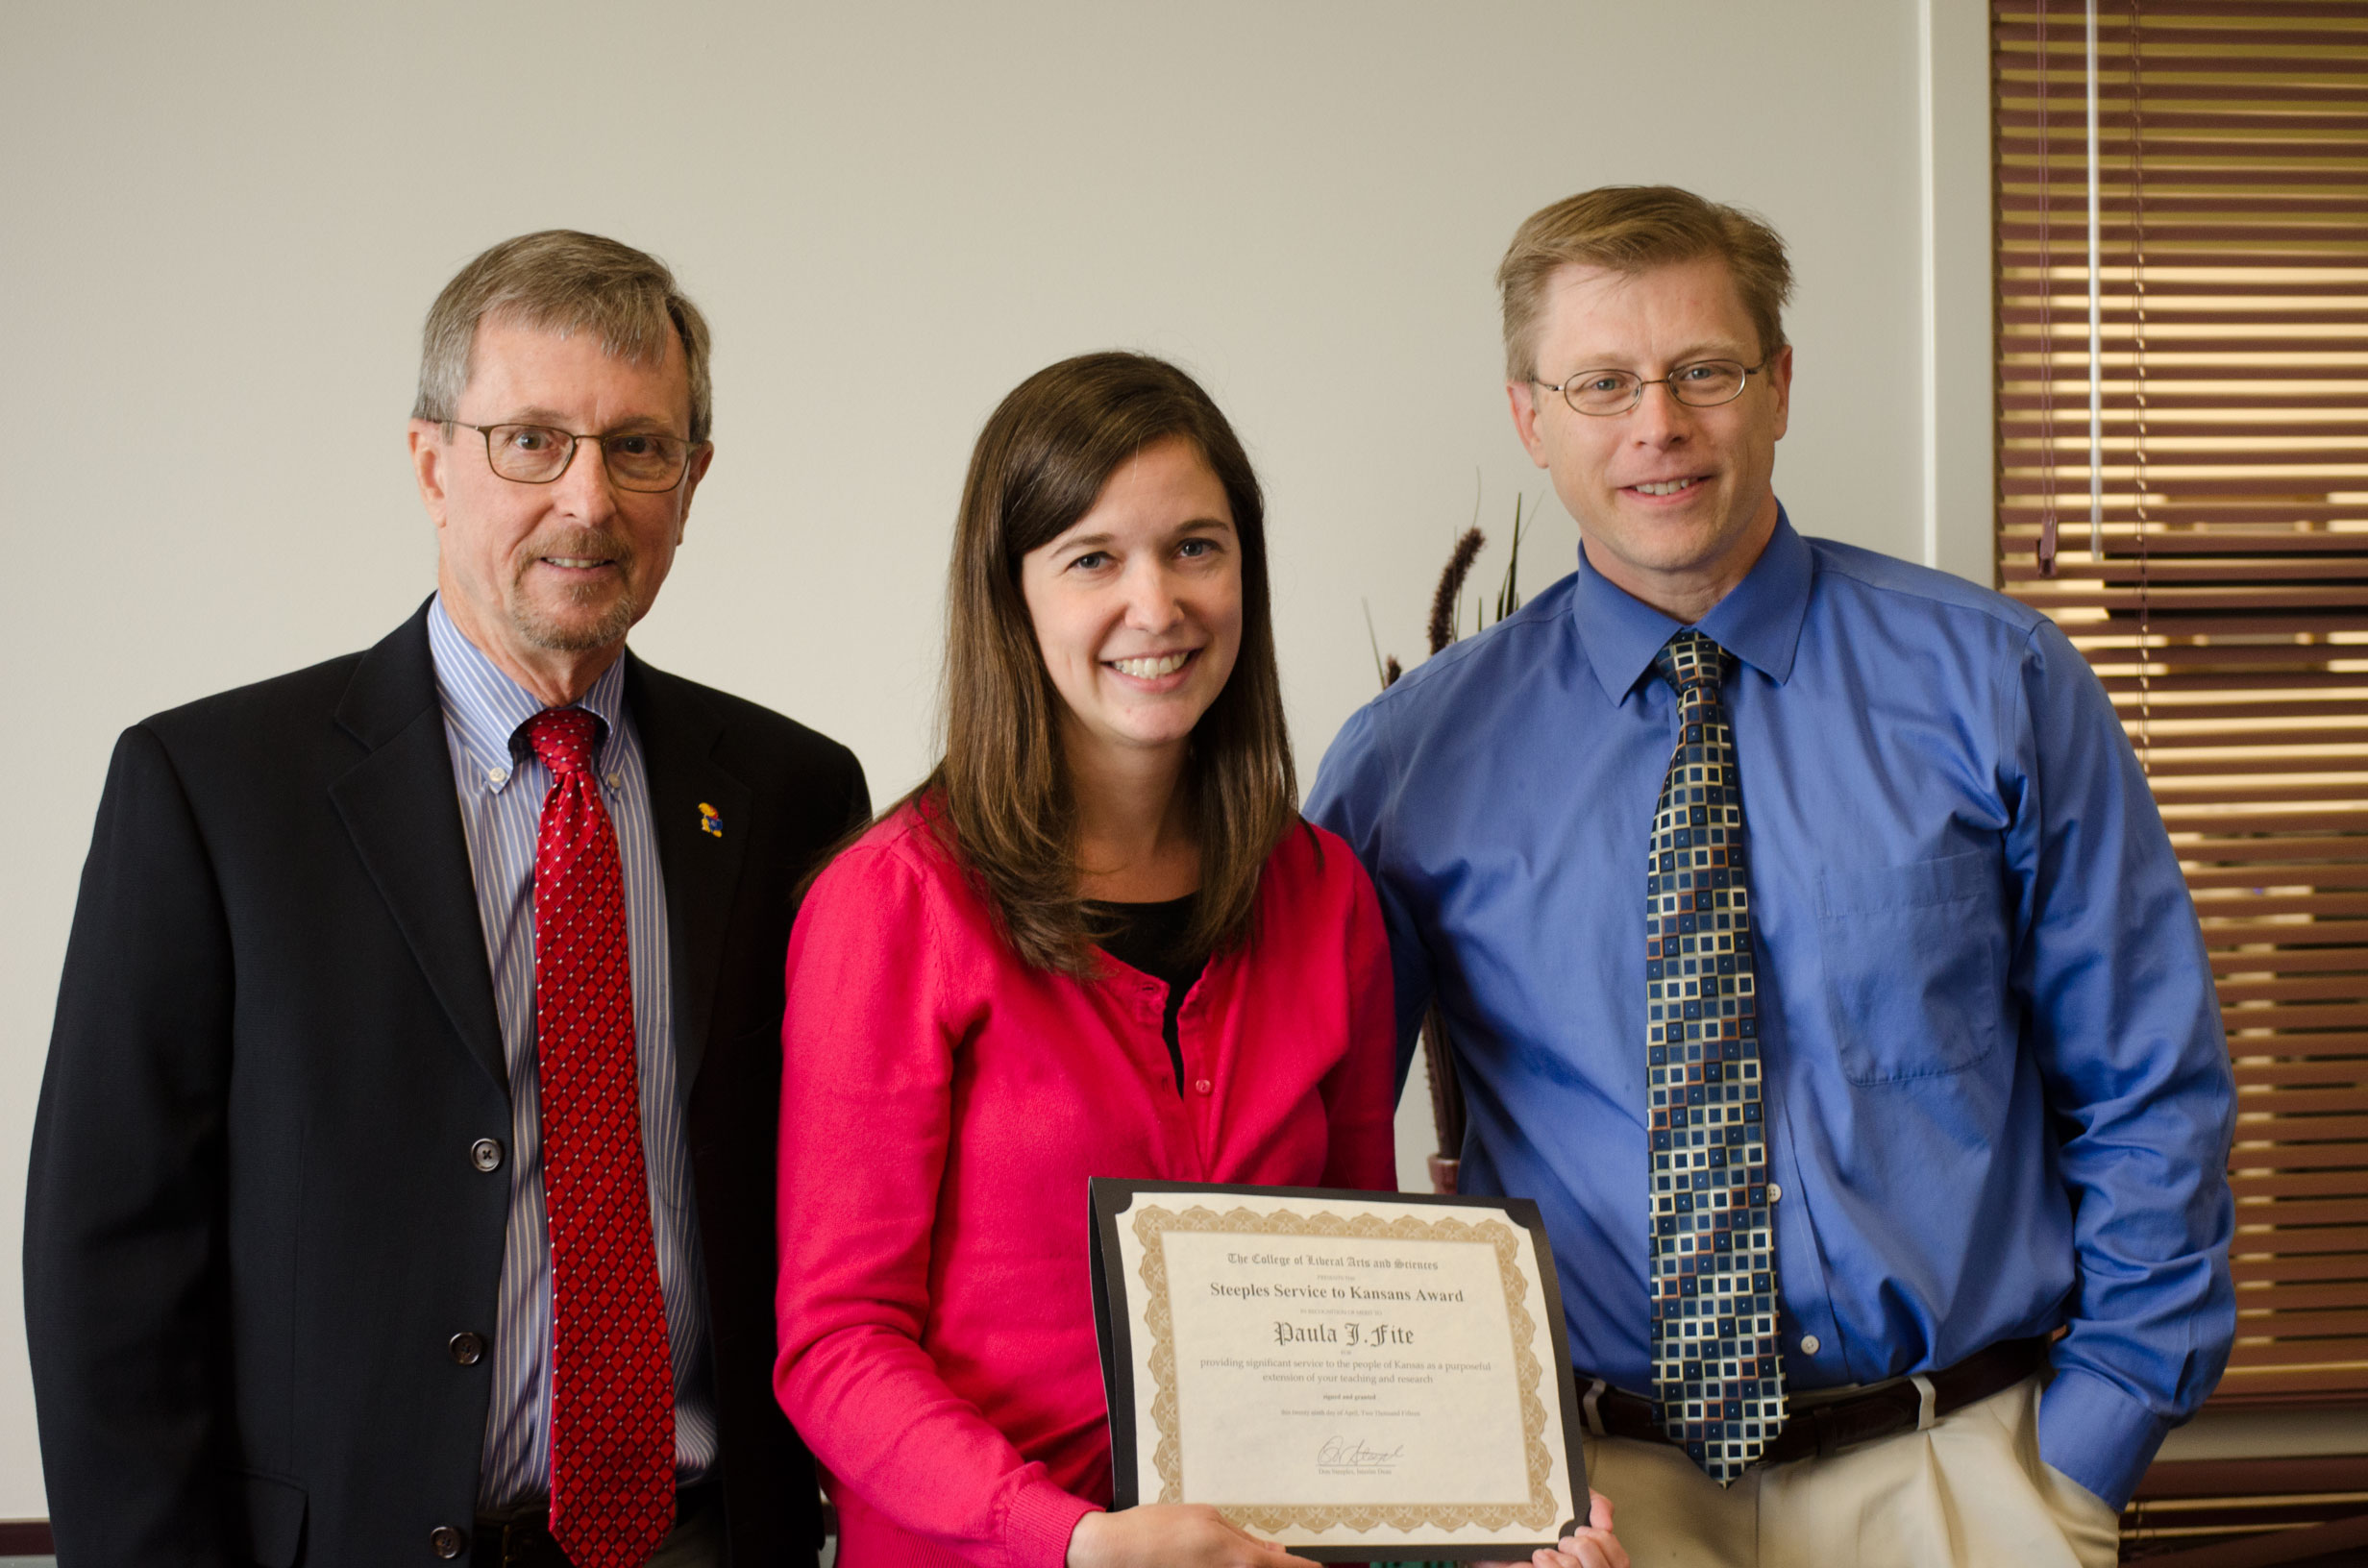 KU professor Paula Fite receives 2015 Steeples Award